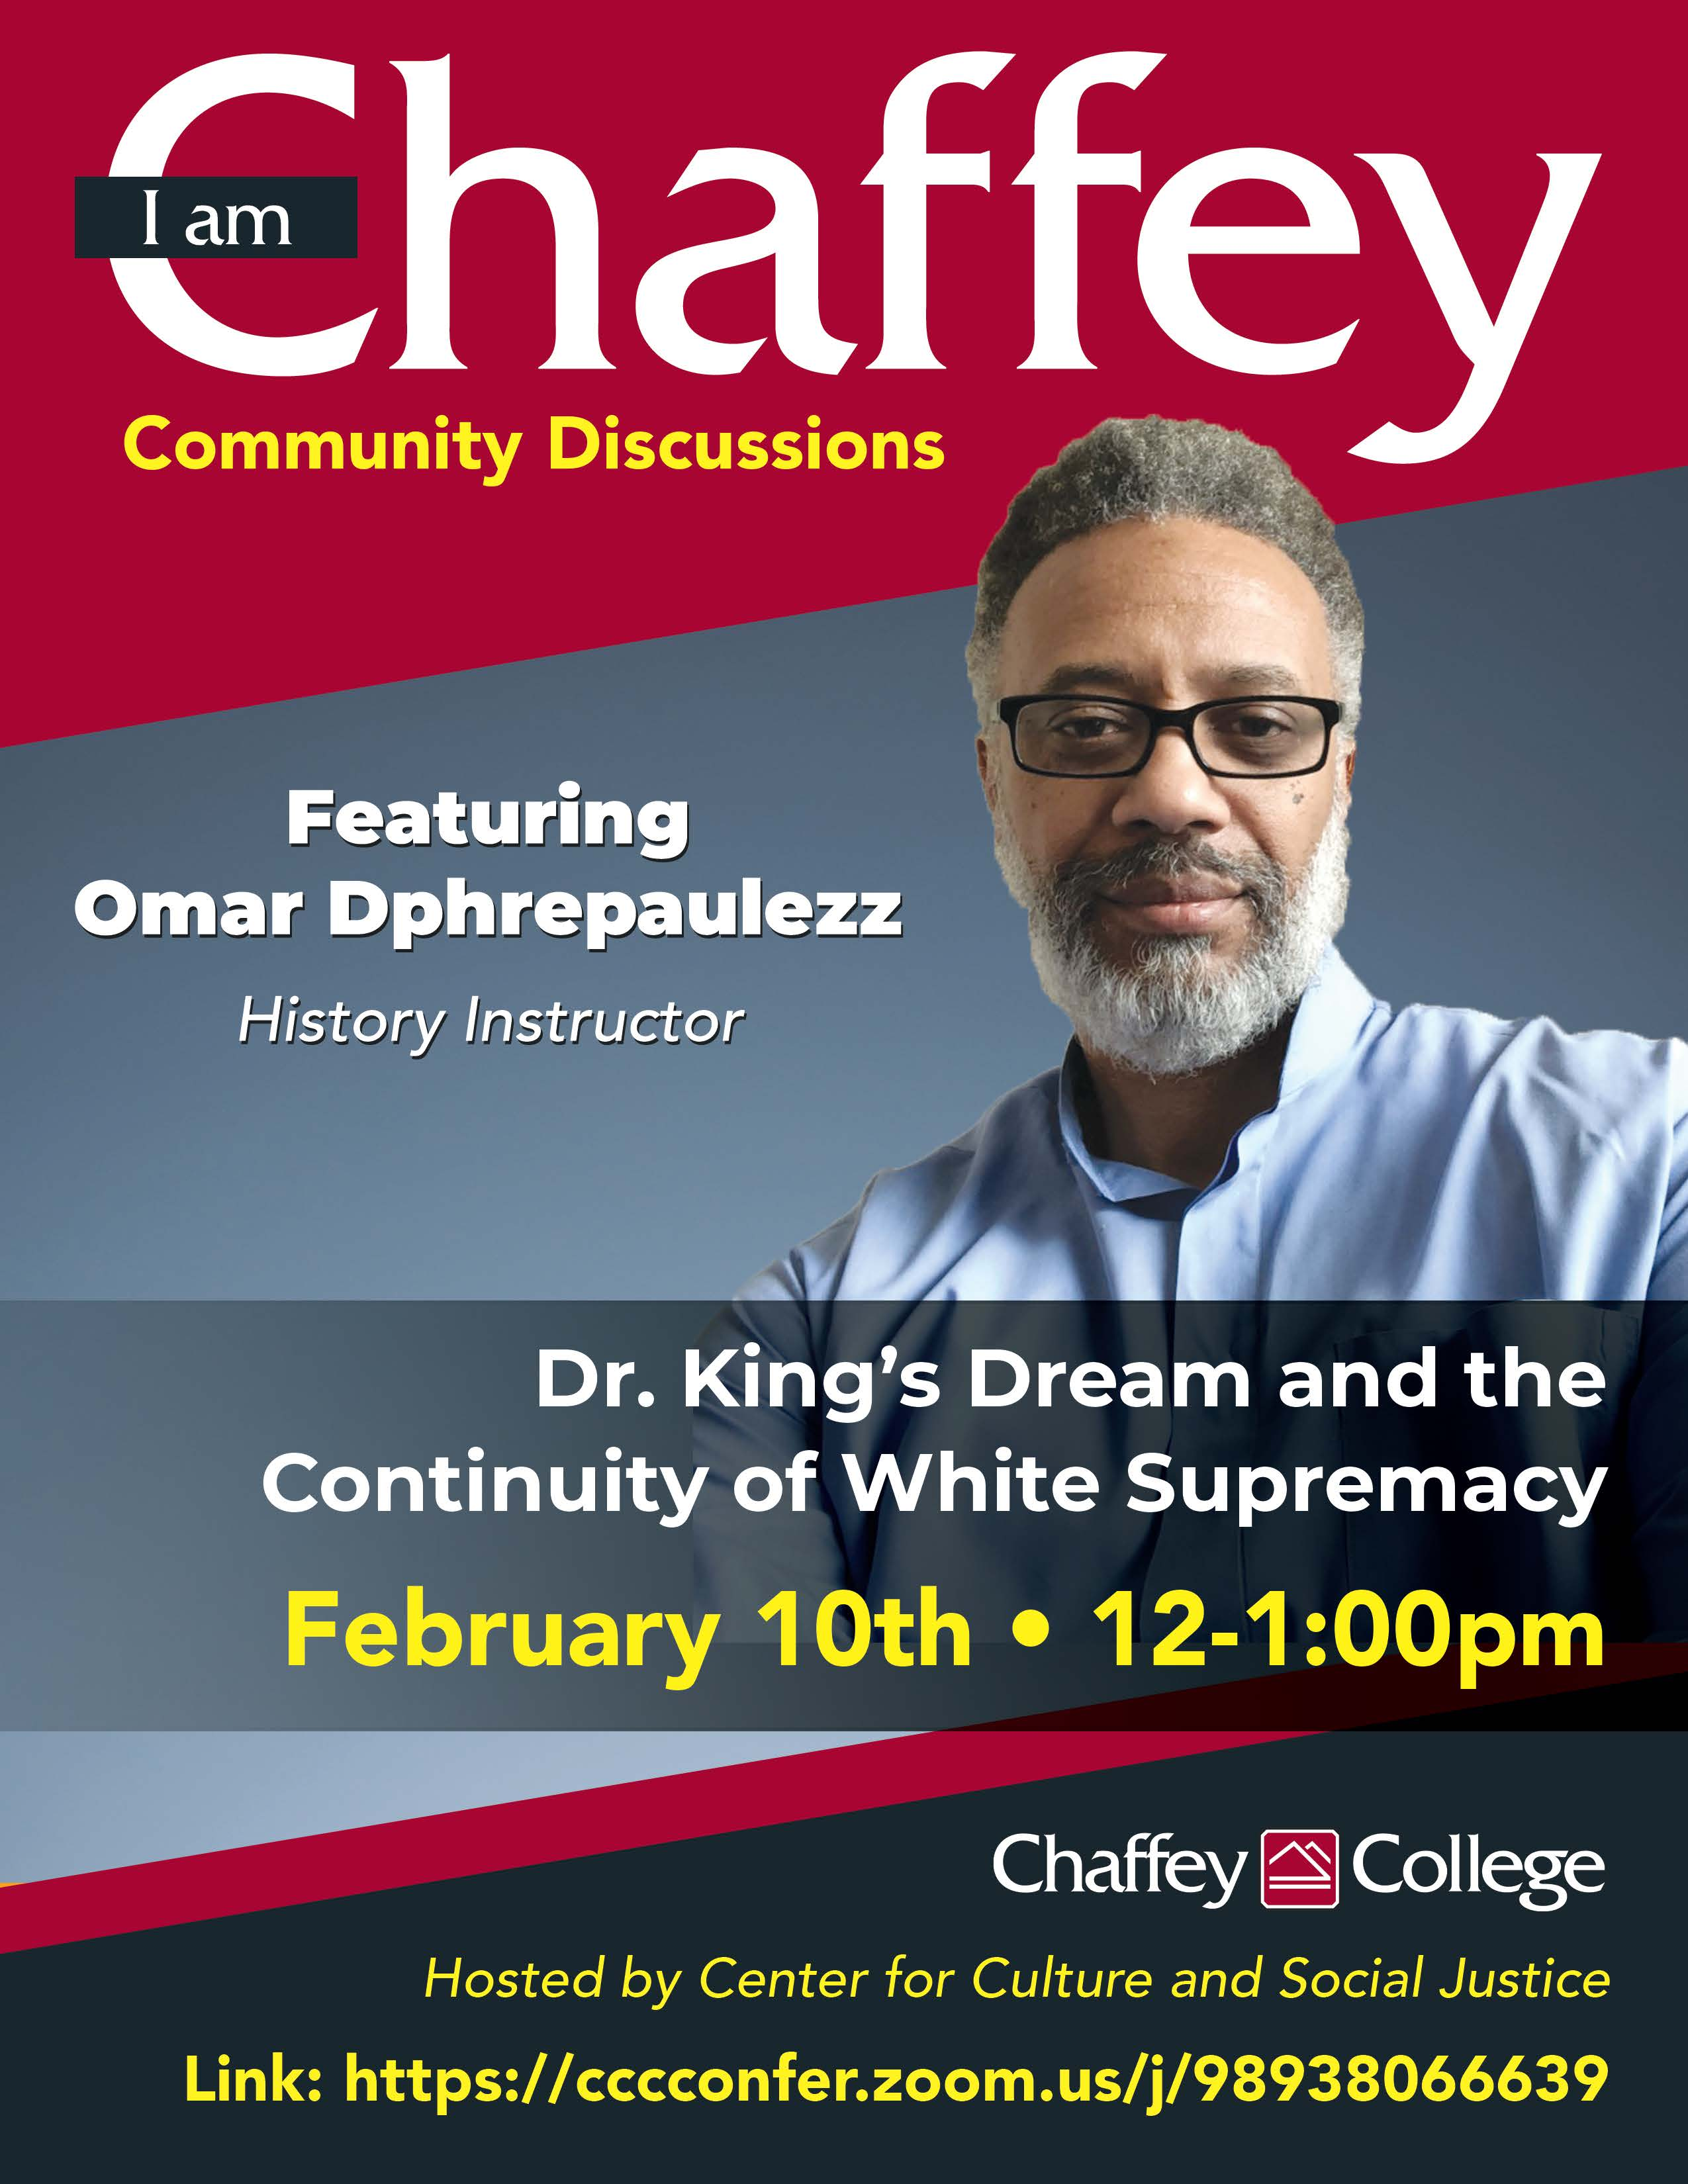 I am Chaffey Community Discussions: Dr. King's Dream and the Continuity of White Supremacy